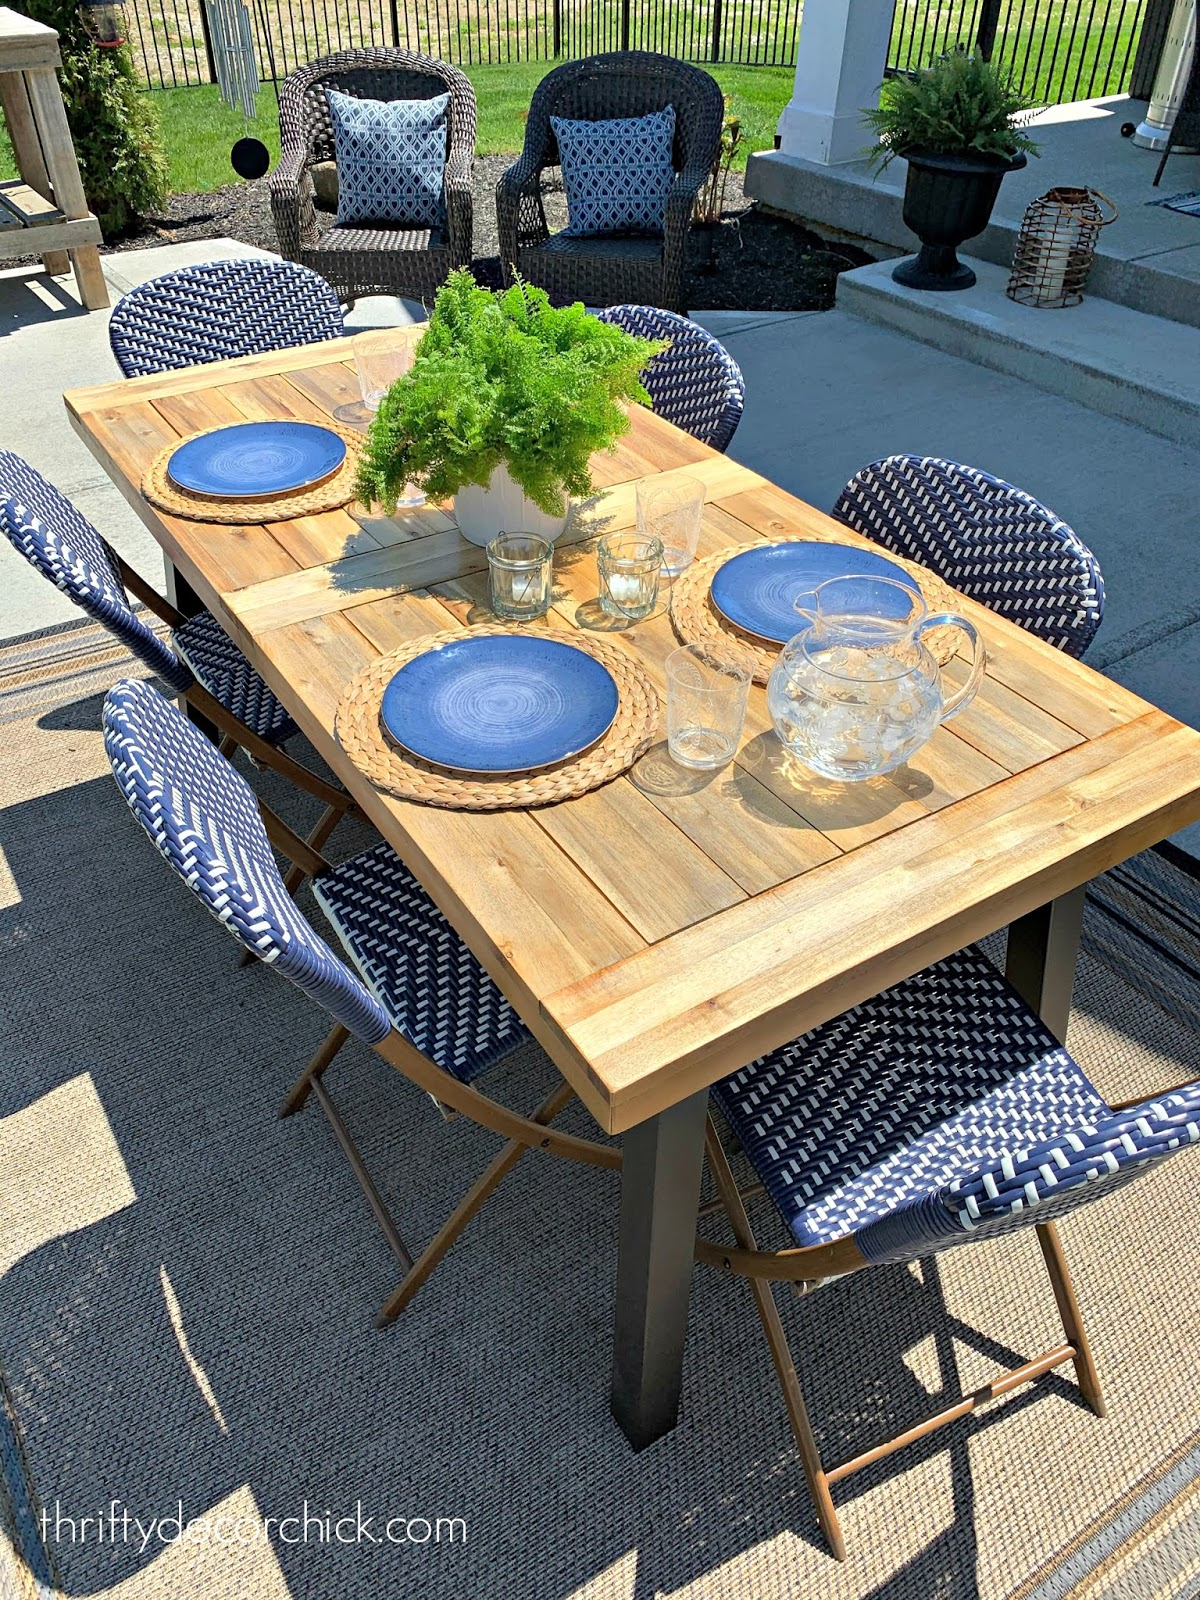 Refinished outdoor wood table